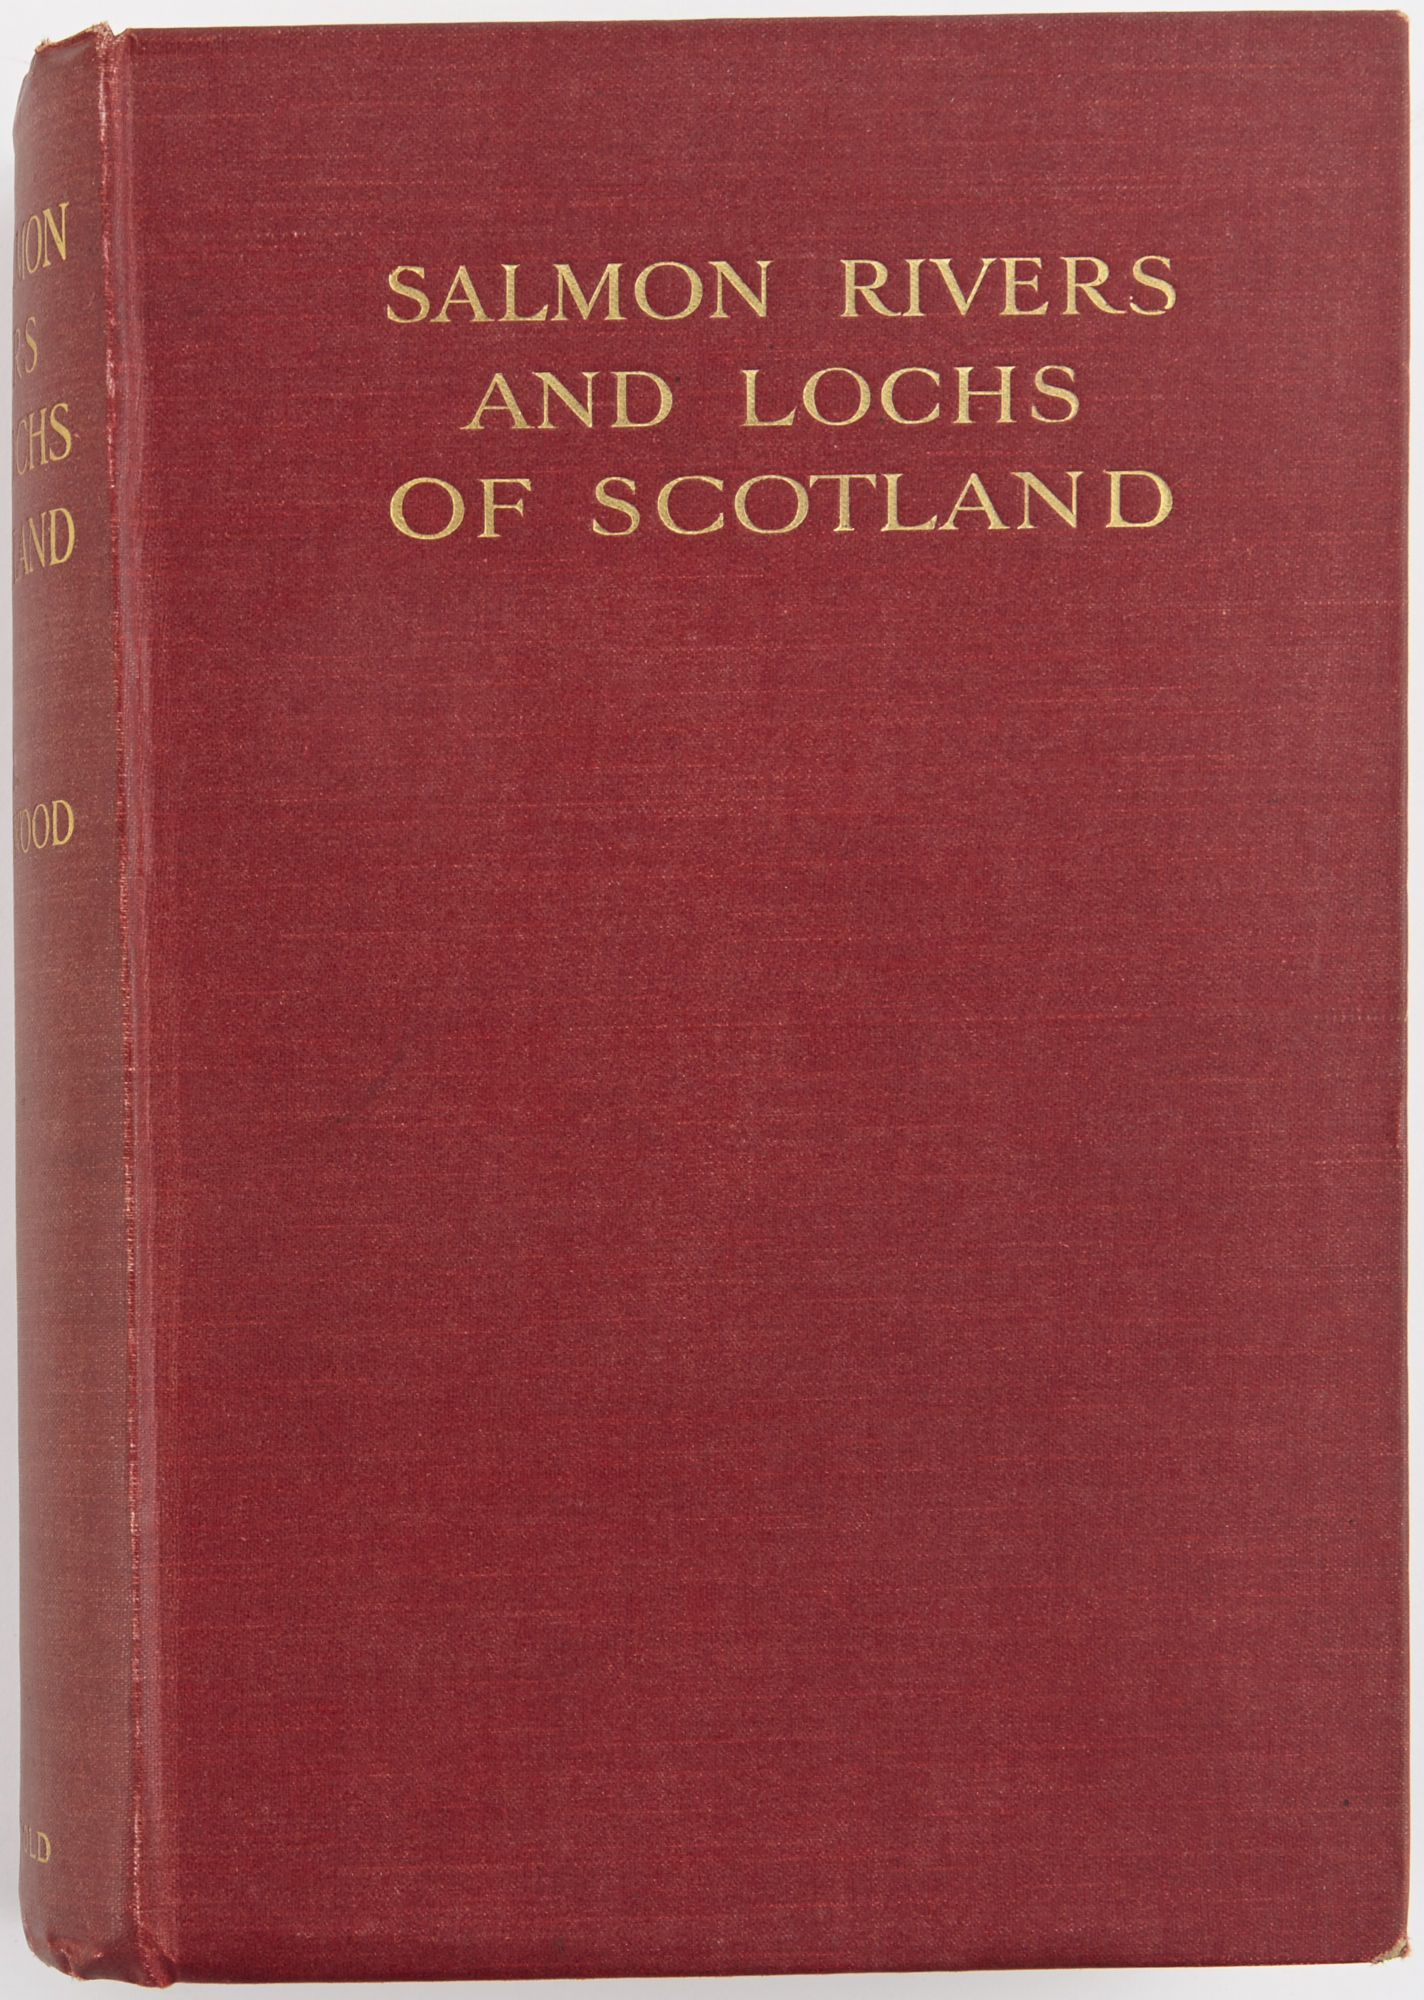 Lot image - CALDERWOOD, W. L., F.R.S.E.  The Salmon Rivers and Lochs of Scotland.